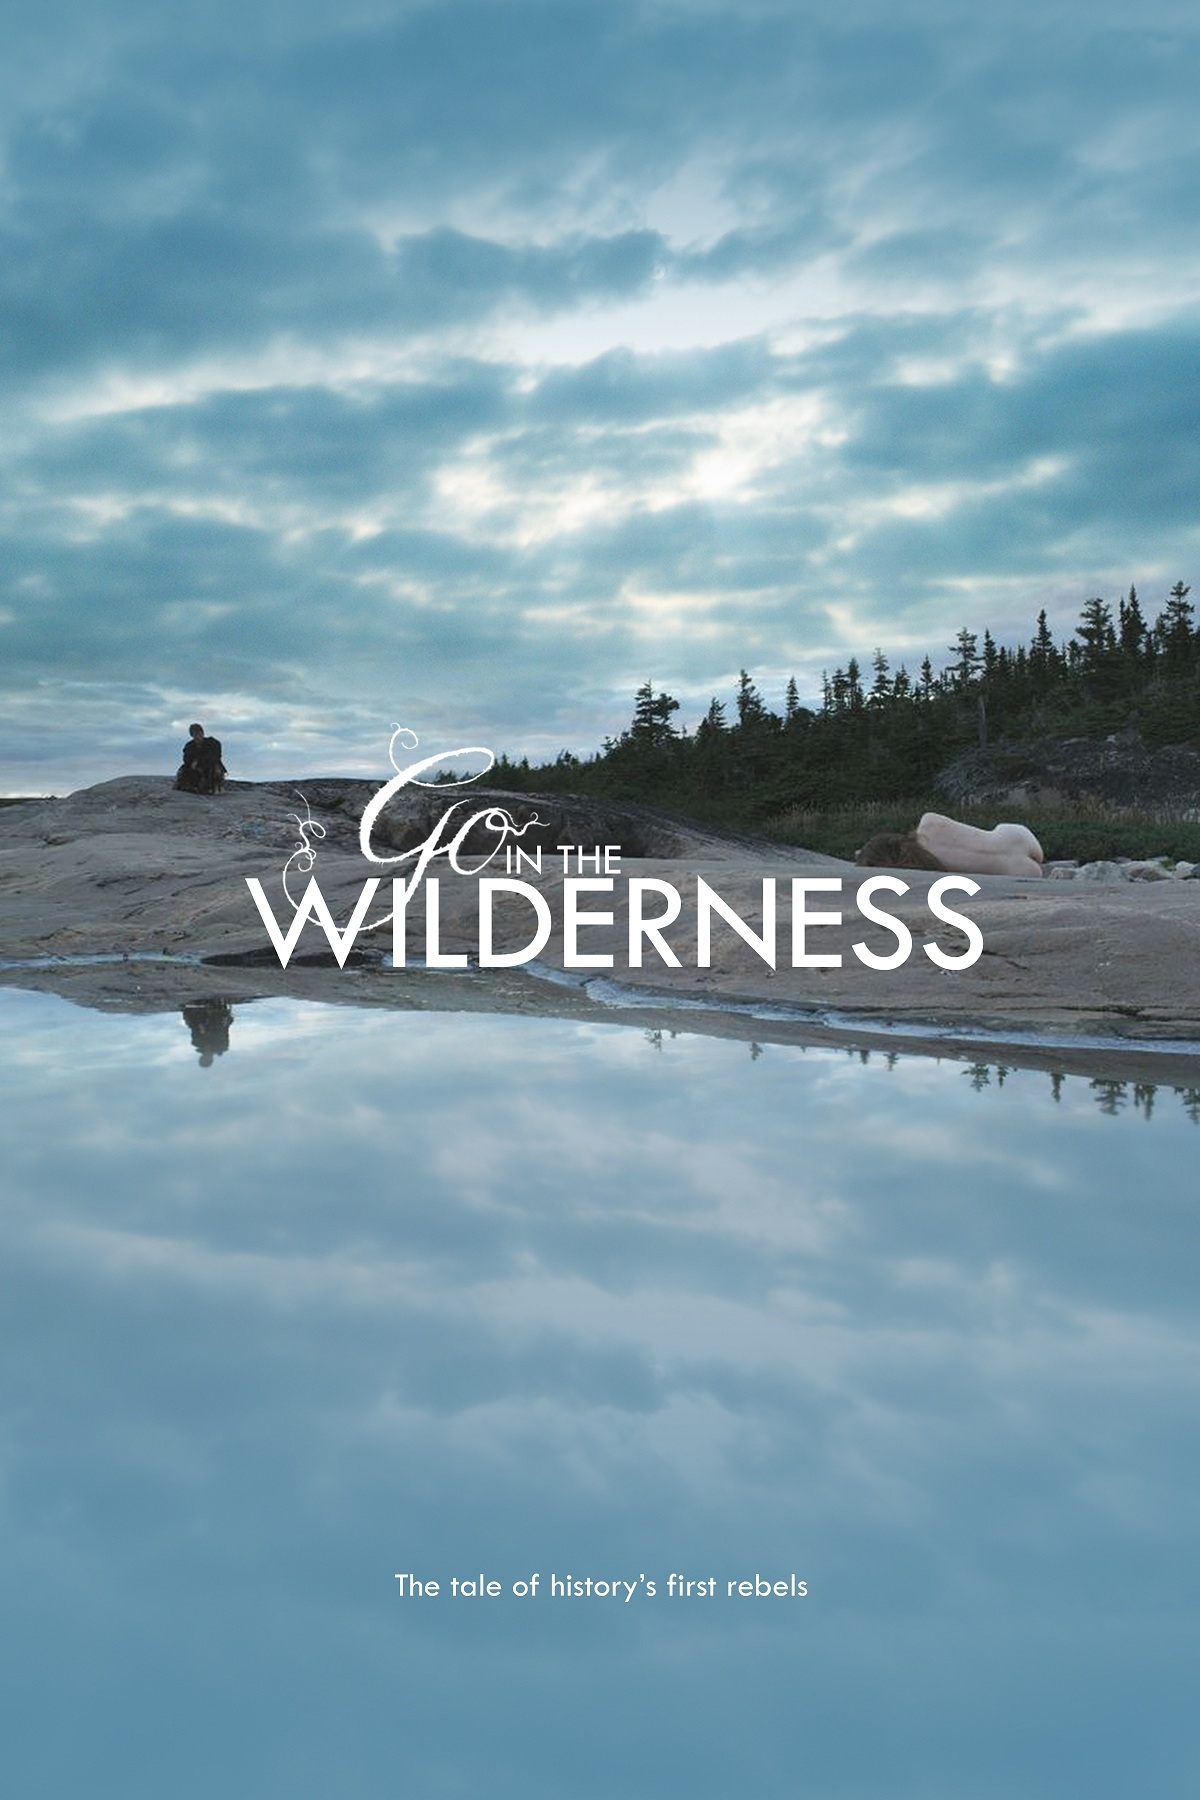 GO IN THE WILDERNESS (2014)